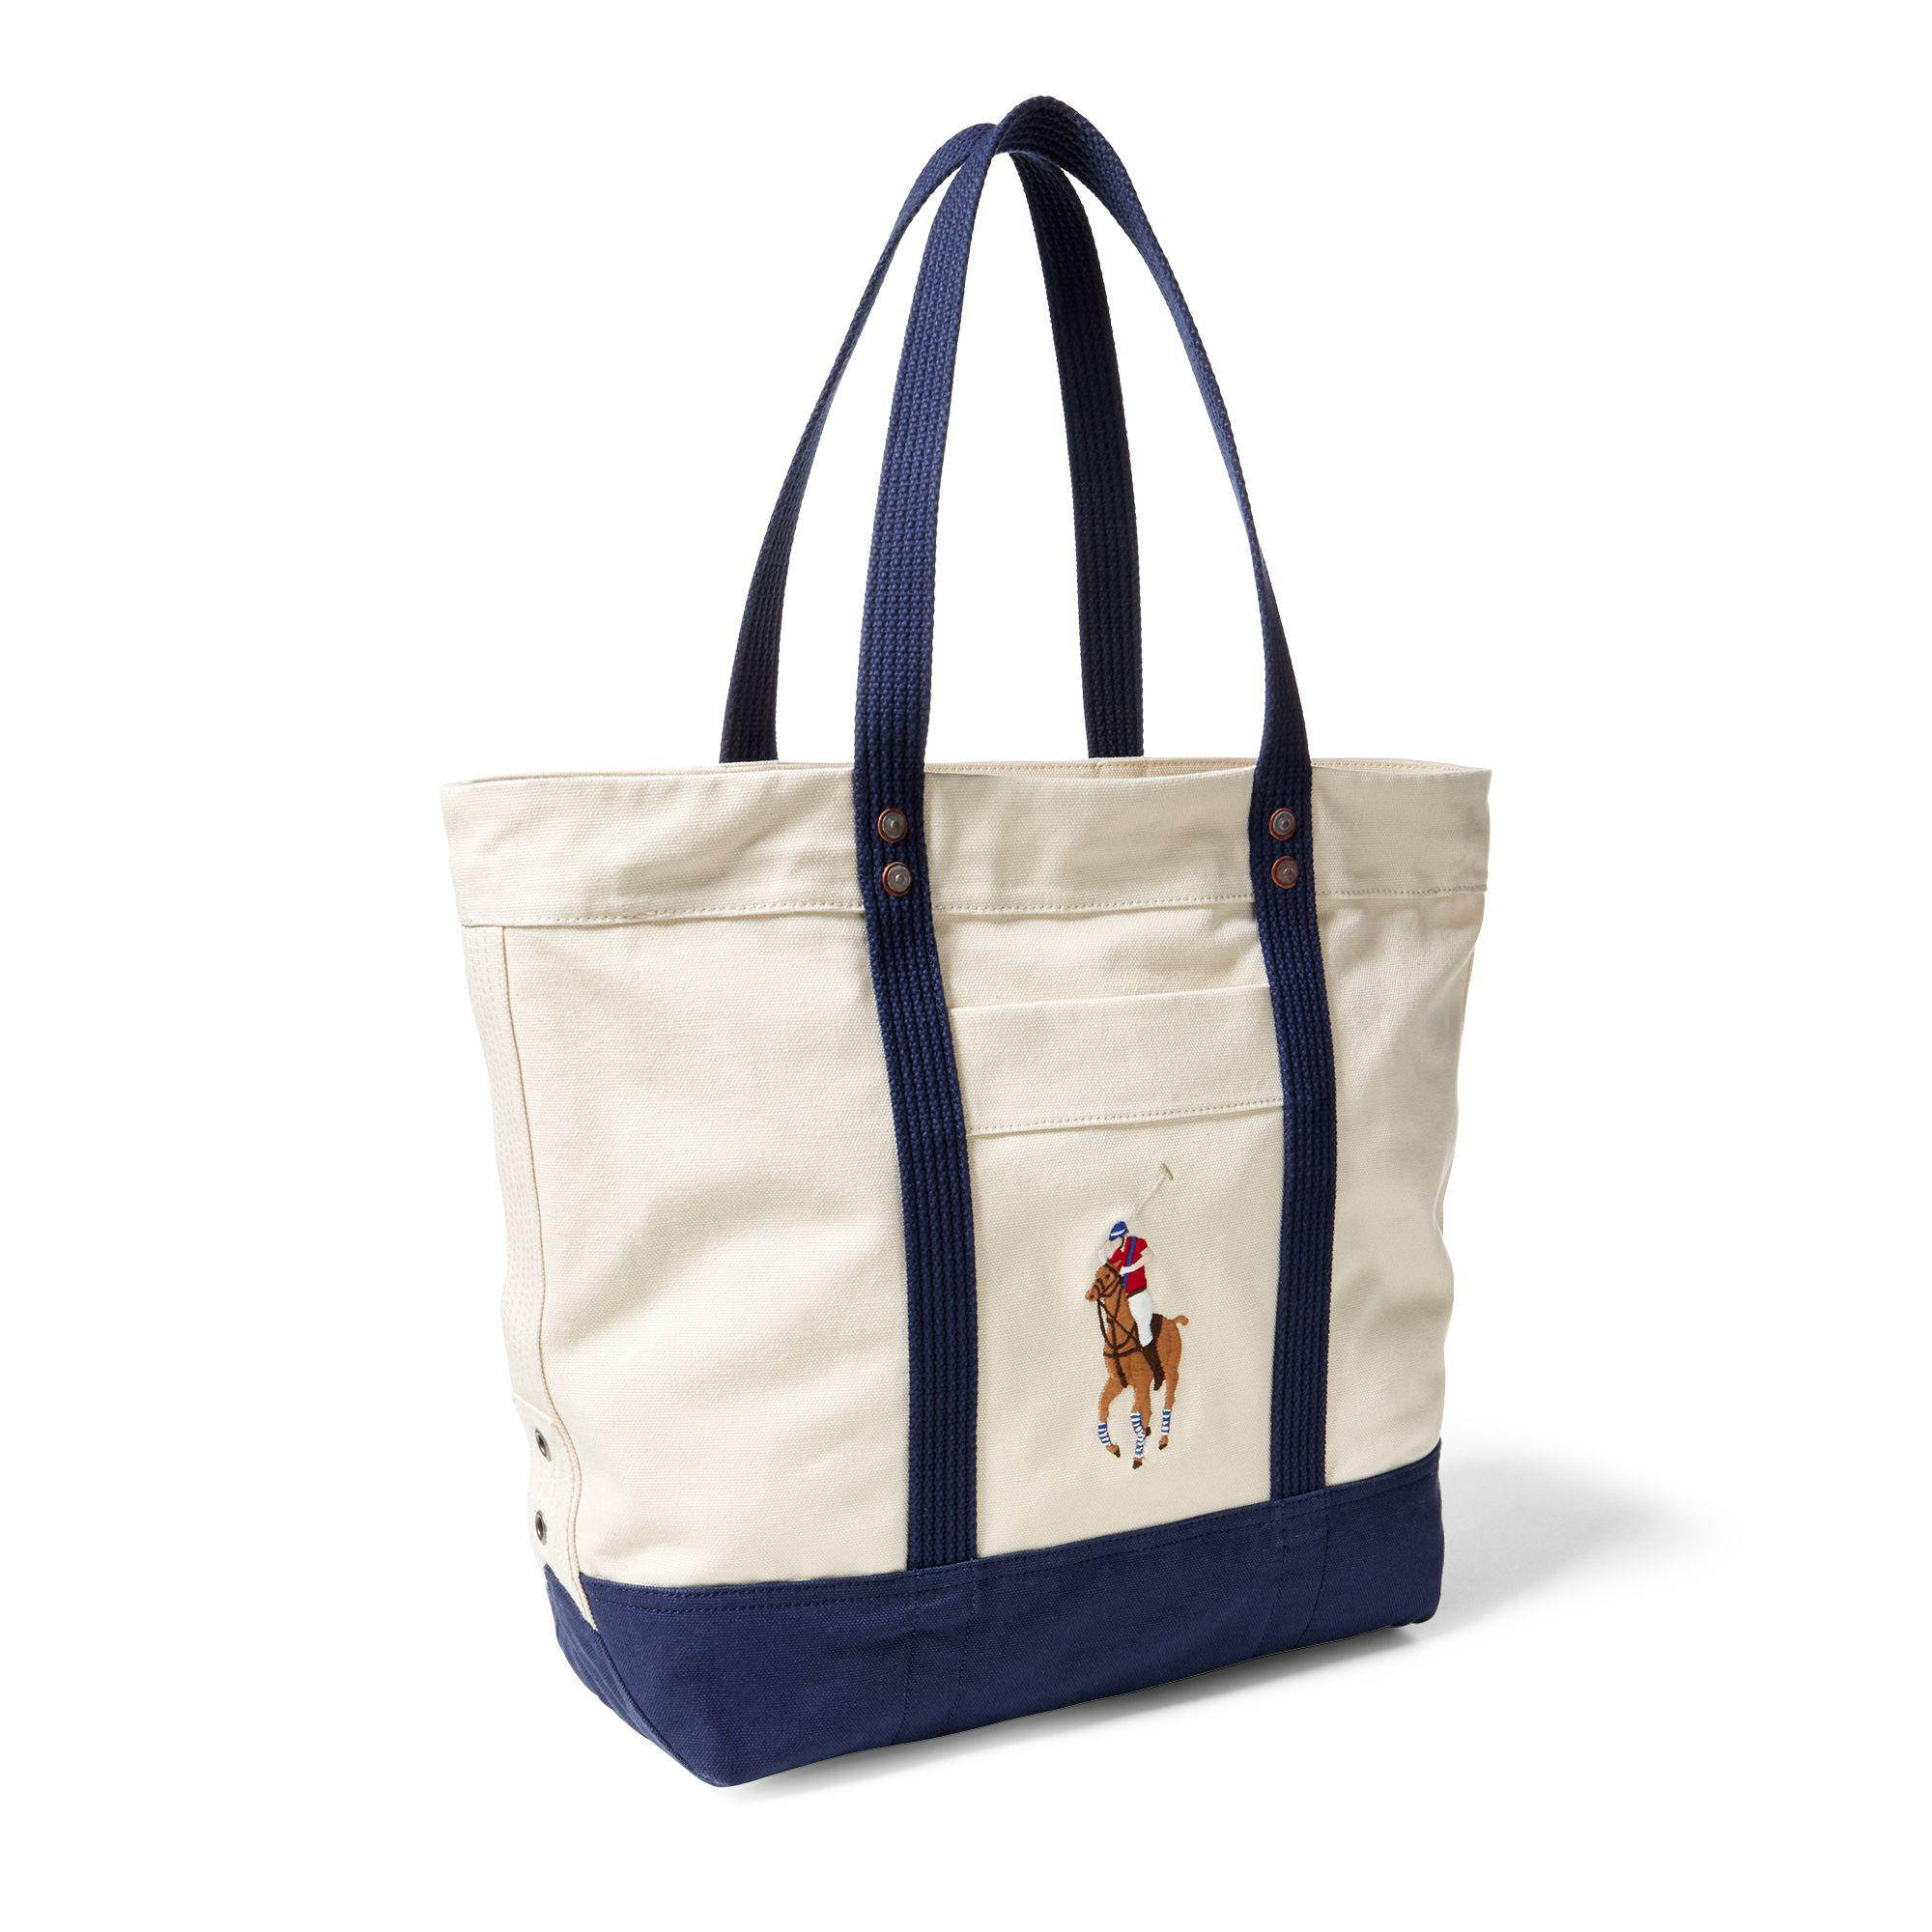 f2f63d2b7886 Polo Ralph Lauren - Blue Canvas Big Pony Tote for Men - Lyst. View  fullscreen